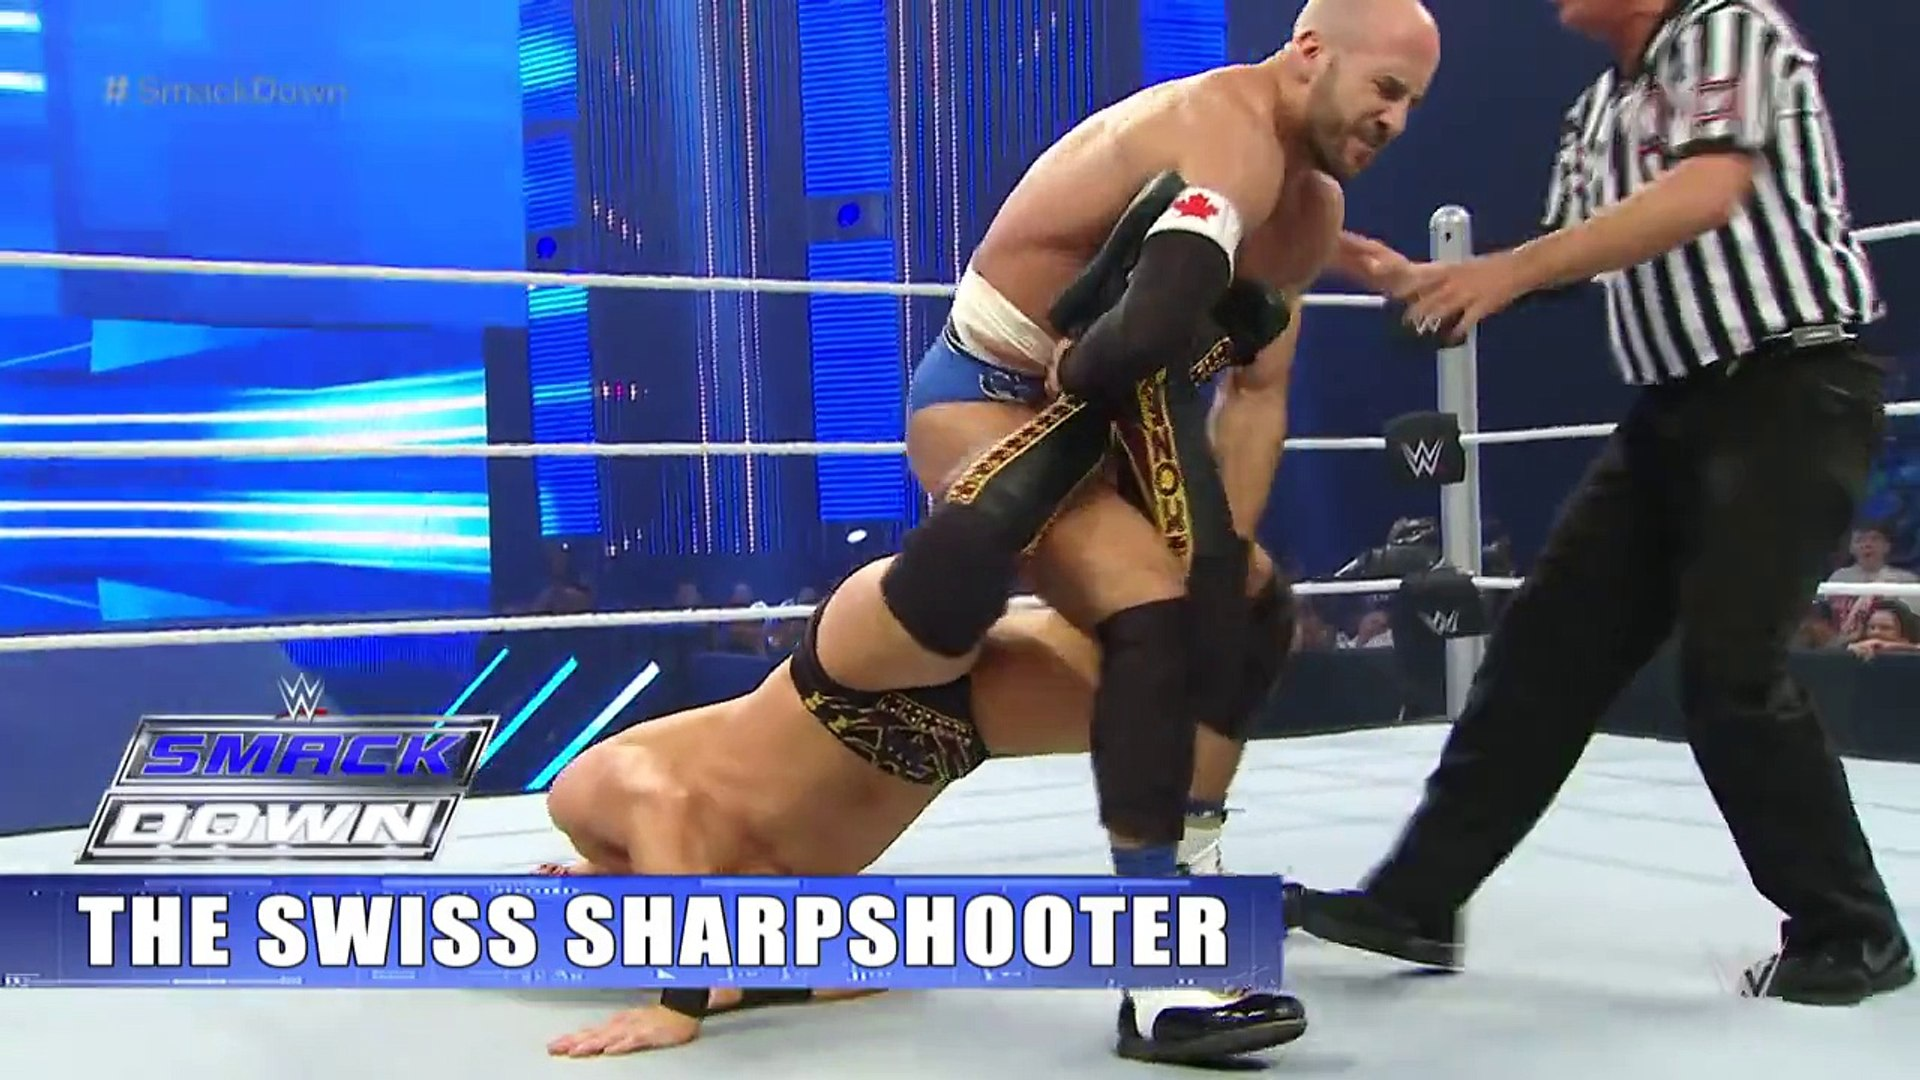 Top 10 SmackDown moments_ WWE Top 10, Sept. 10, 2015